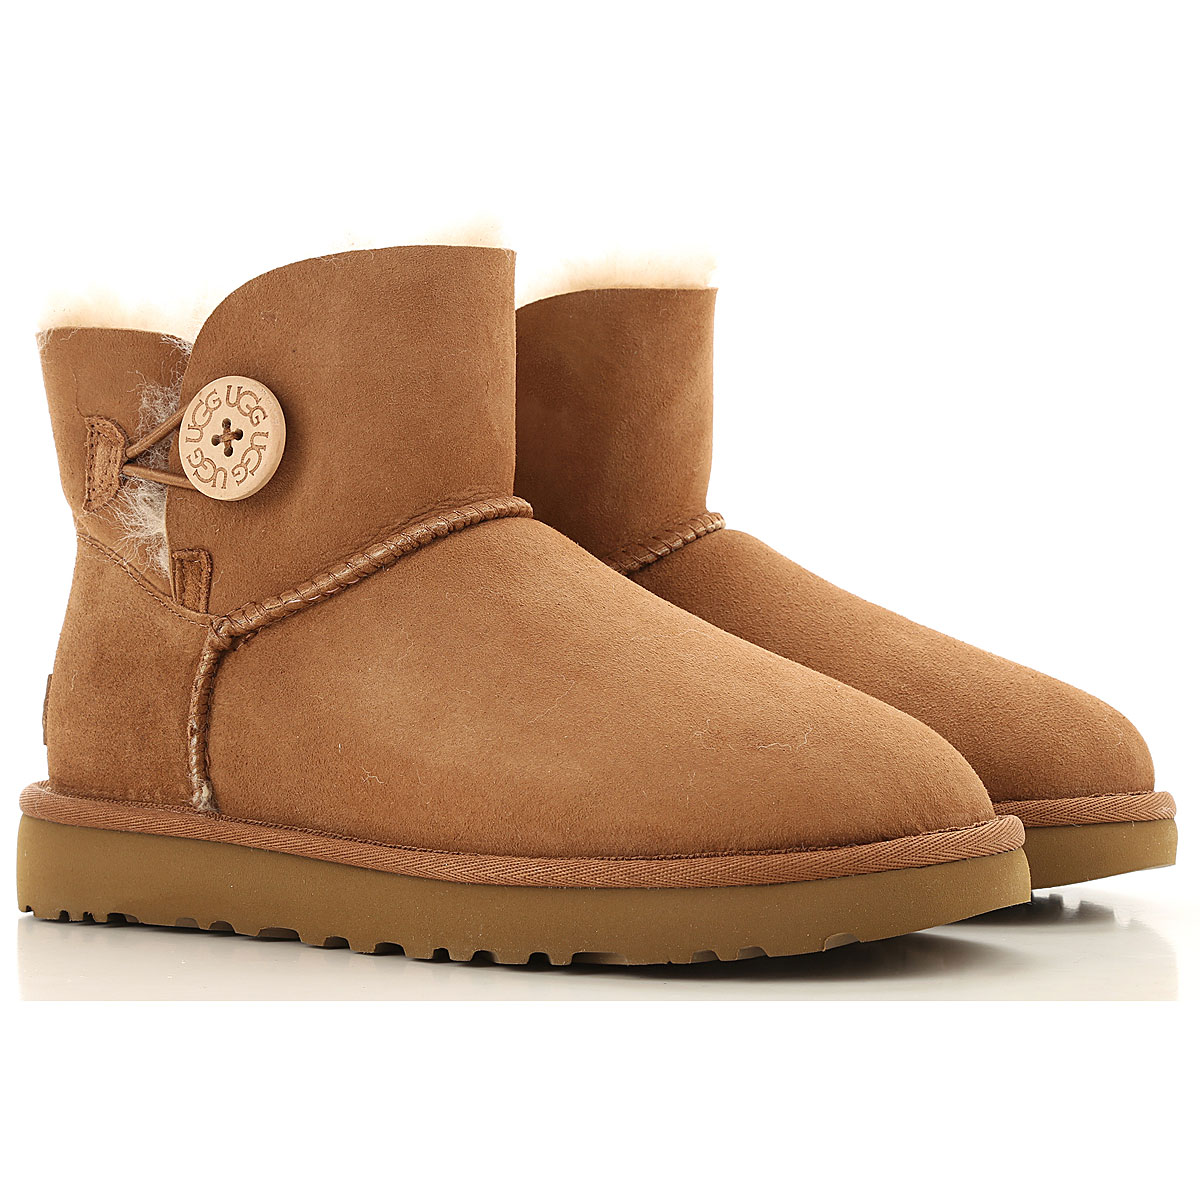 UGG Boots for Women, Booties On Sale, Chestnut, Leather, 2019, USA 5 UK 3 5 EU 36 JAPAN 220 USA 6 UK 4 5 EU 37 JAPAN 230 USA 8 UK 6 5 EU 39 J